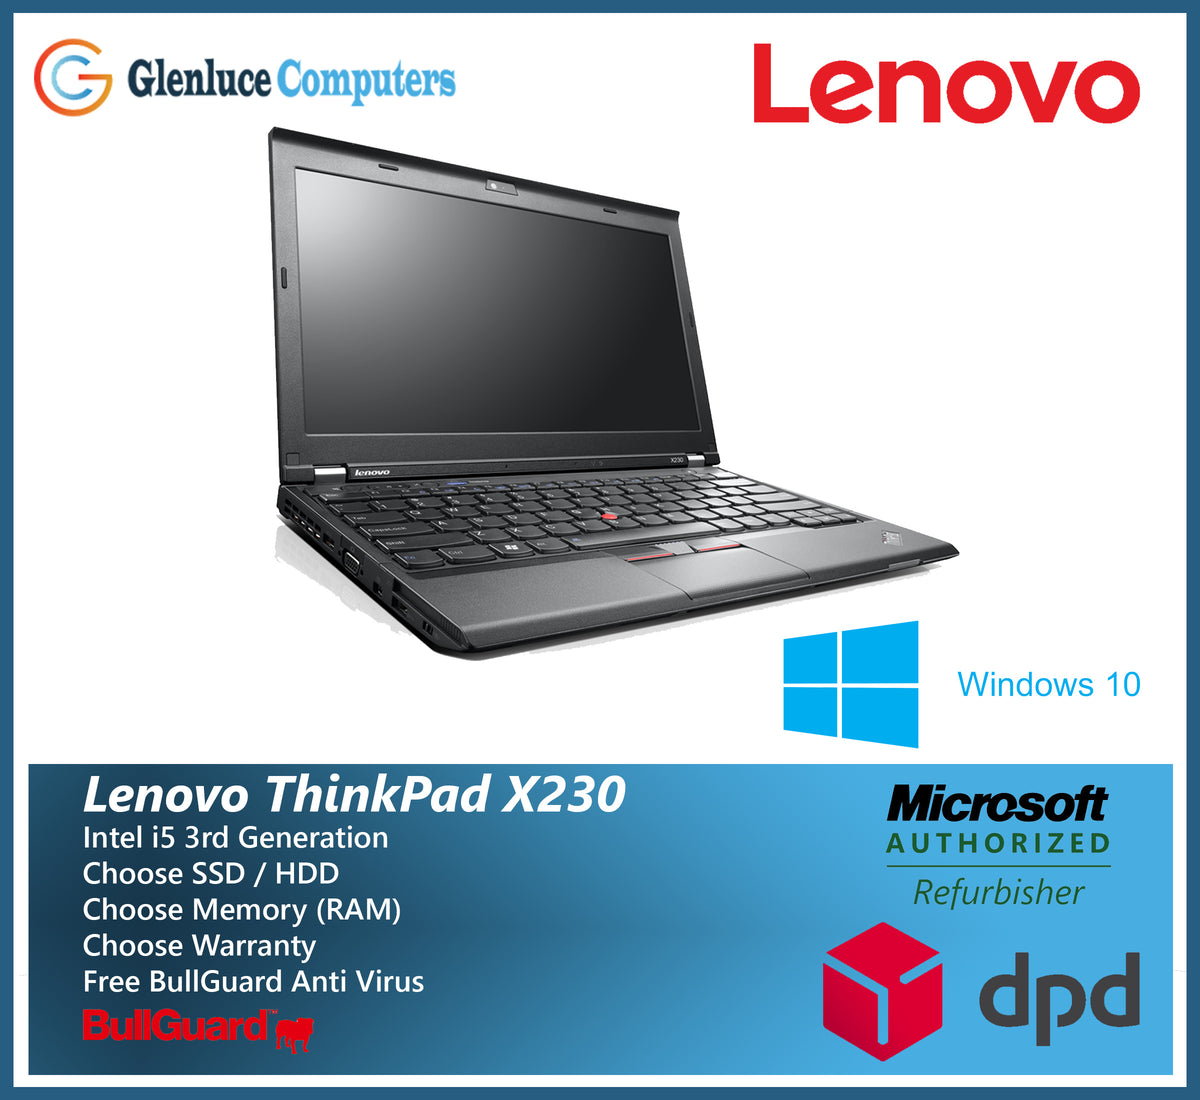 ⚡ Lenovo x230 touchpad driver windows 10 | [X230] Sticky Touchpad